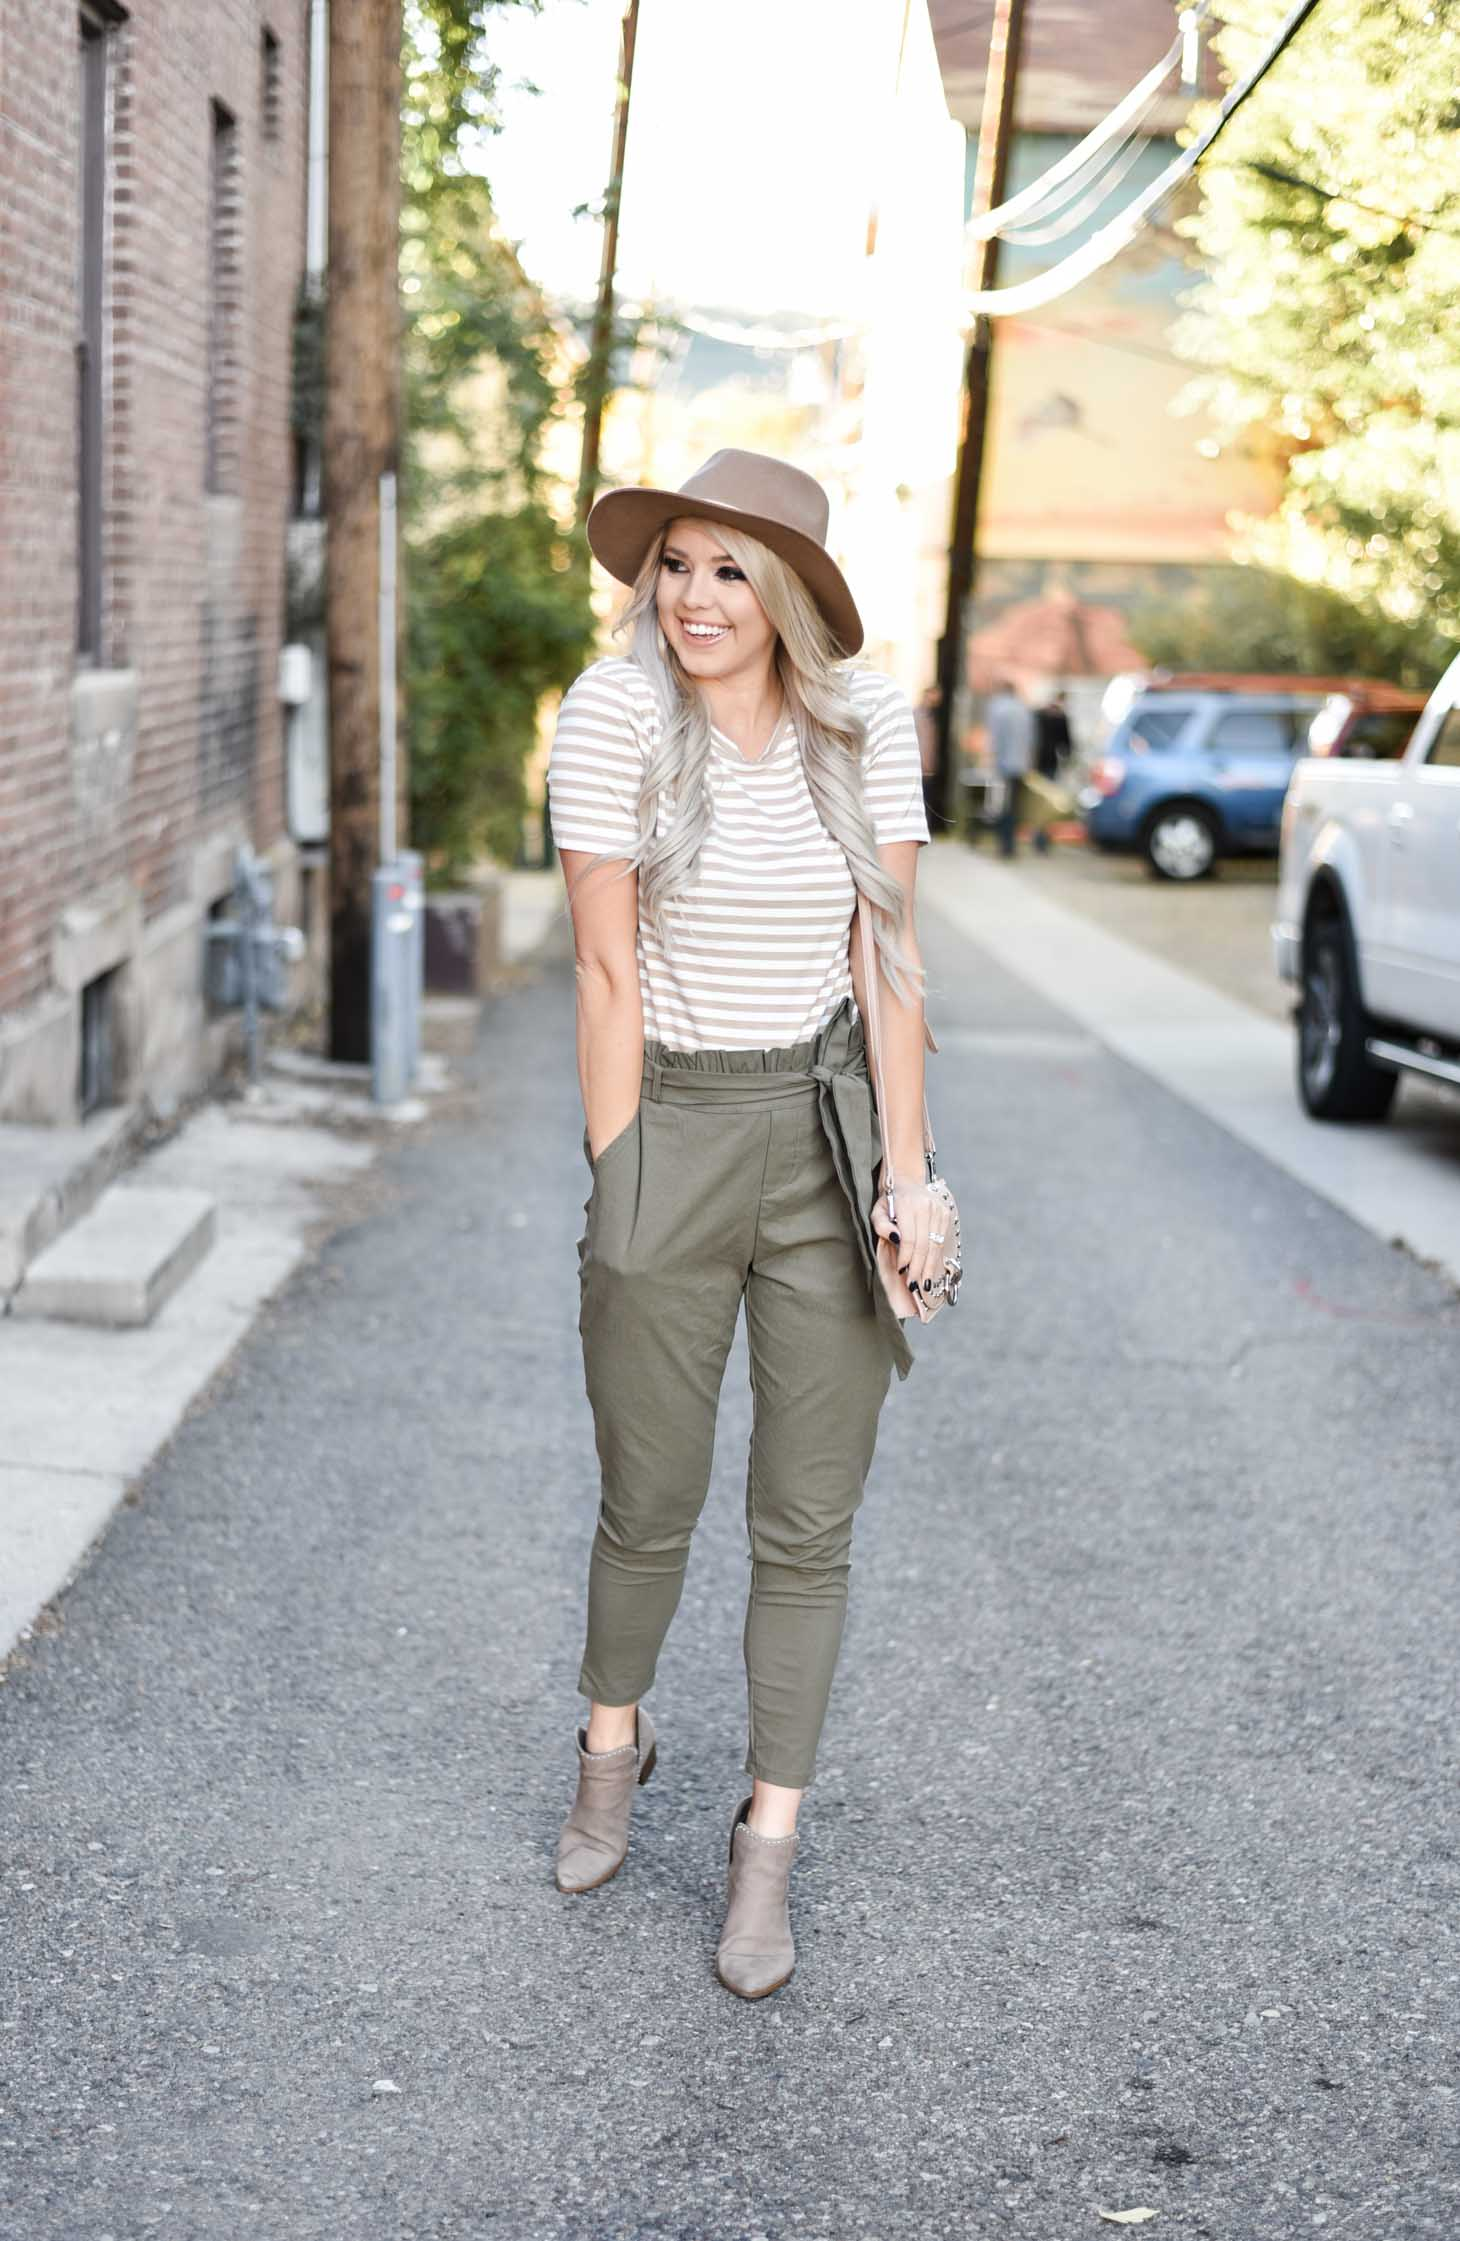 Erin Elizabeth of Wink and a Twirl shares the cutest high waist pants and striped top from Amaryllis Apparel